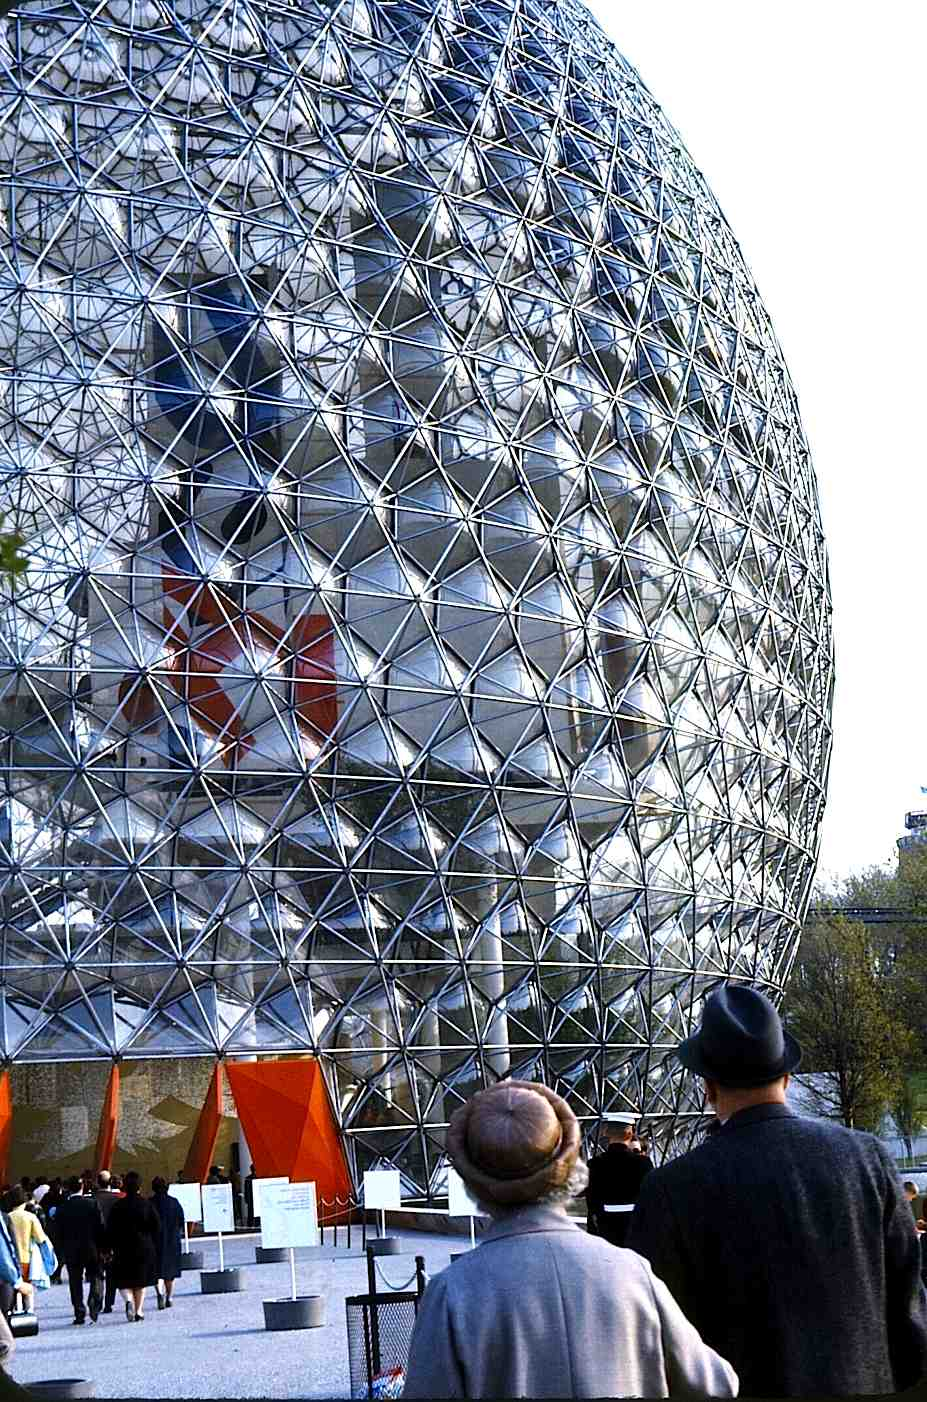 the 1967 USA pavilion at Expo '67 in  Montreal, an icosahedral geodesic dome designed by Buckminster Fuller